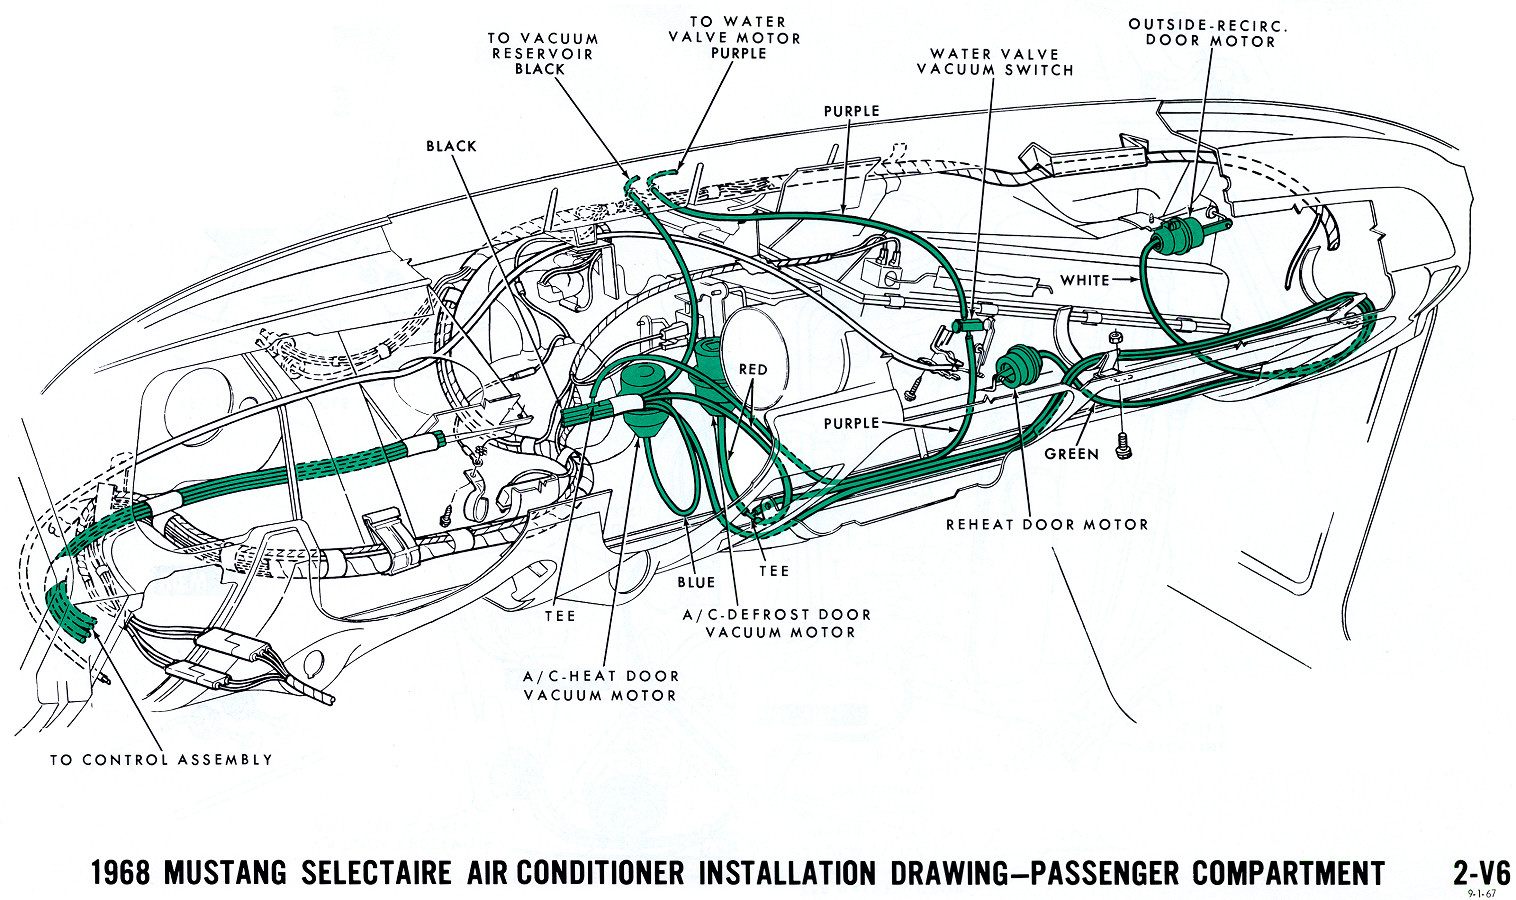 71 chevelle wiring harness wiring library 1965 chevelle wiring diagram 1968 mustang wiring diagrams and vacuum schematics average joe restoration 1972 chevelle wiring diagram pdf 1971